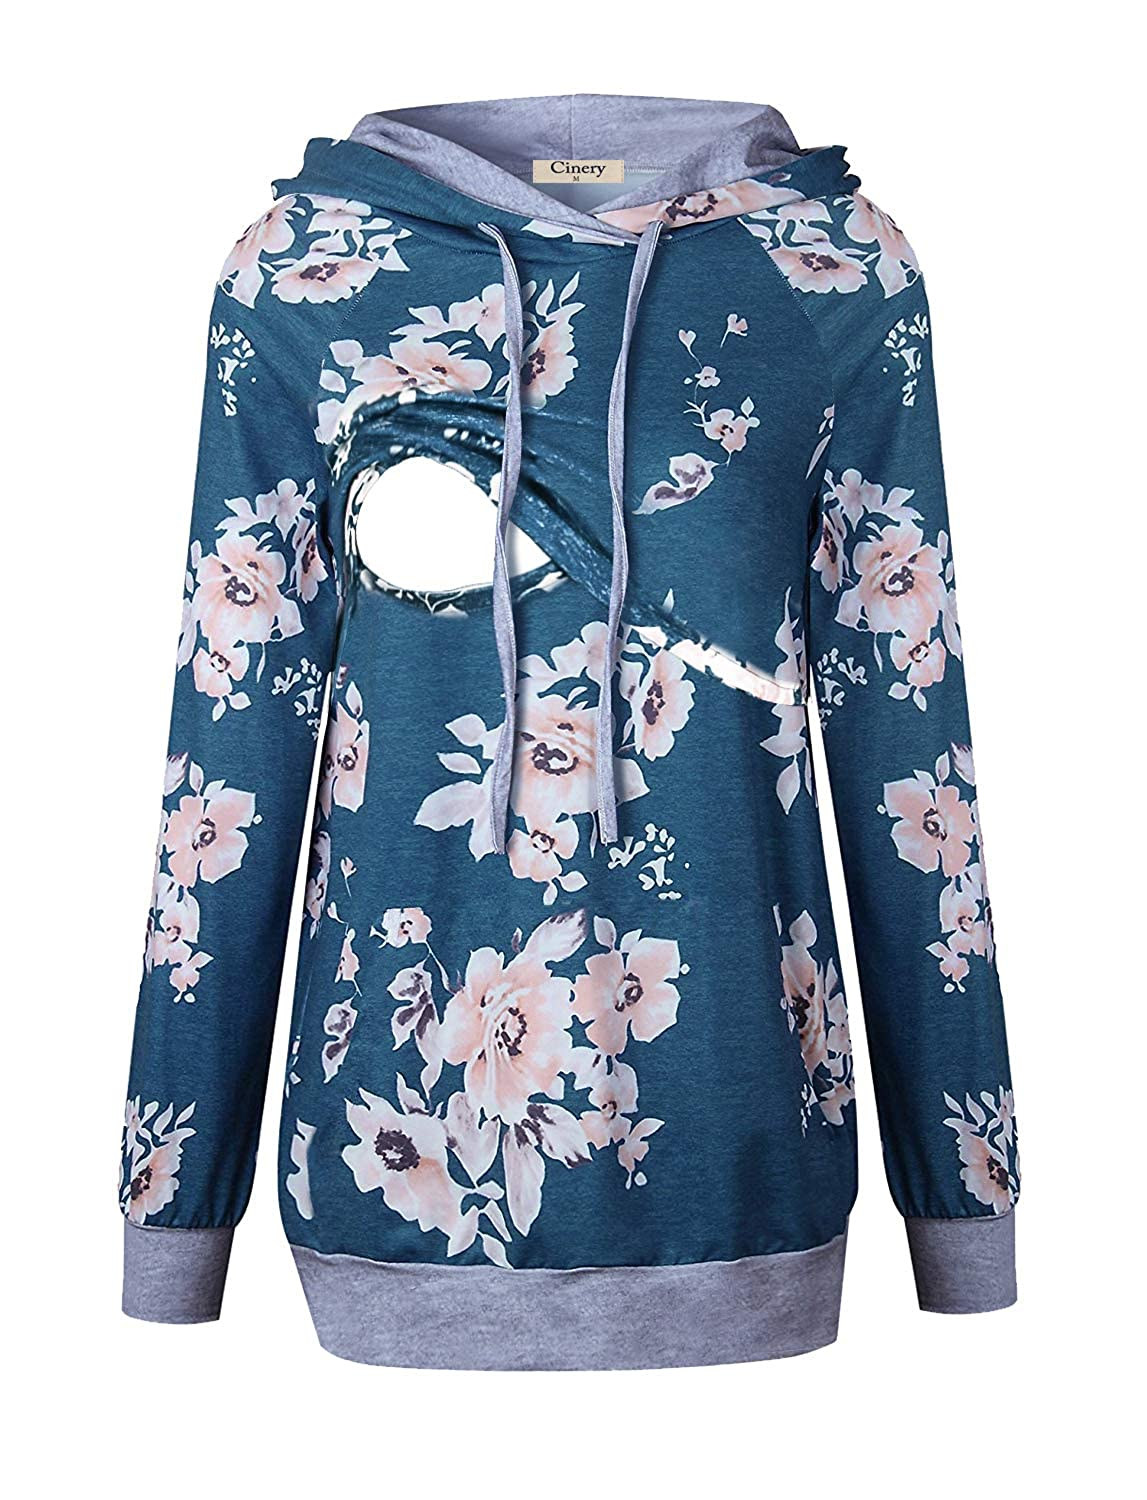 Cinery Women Floral Thin Hoodies Tops Long Sleeve Nursing Breastfeeding Clothes